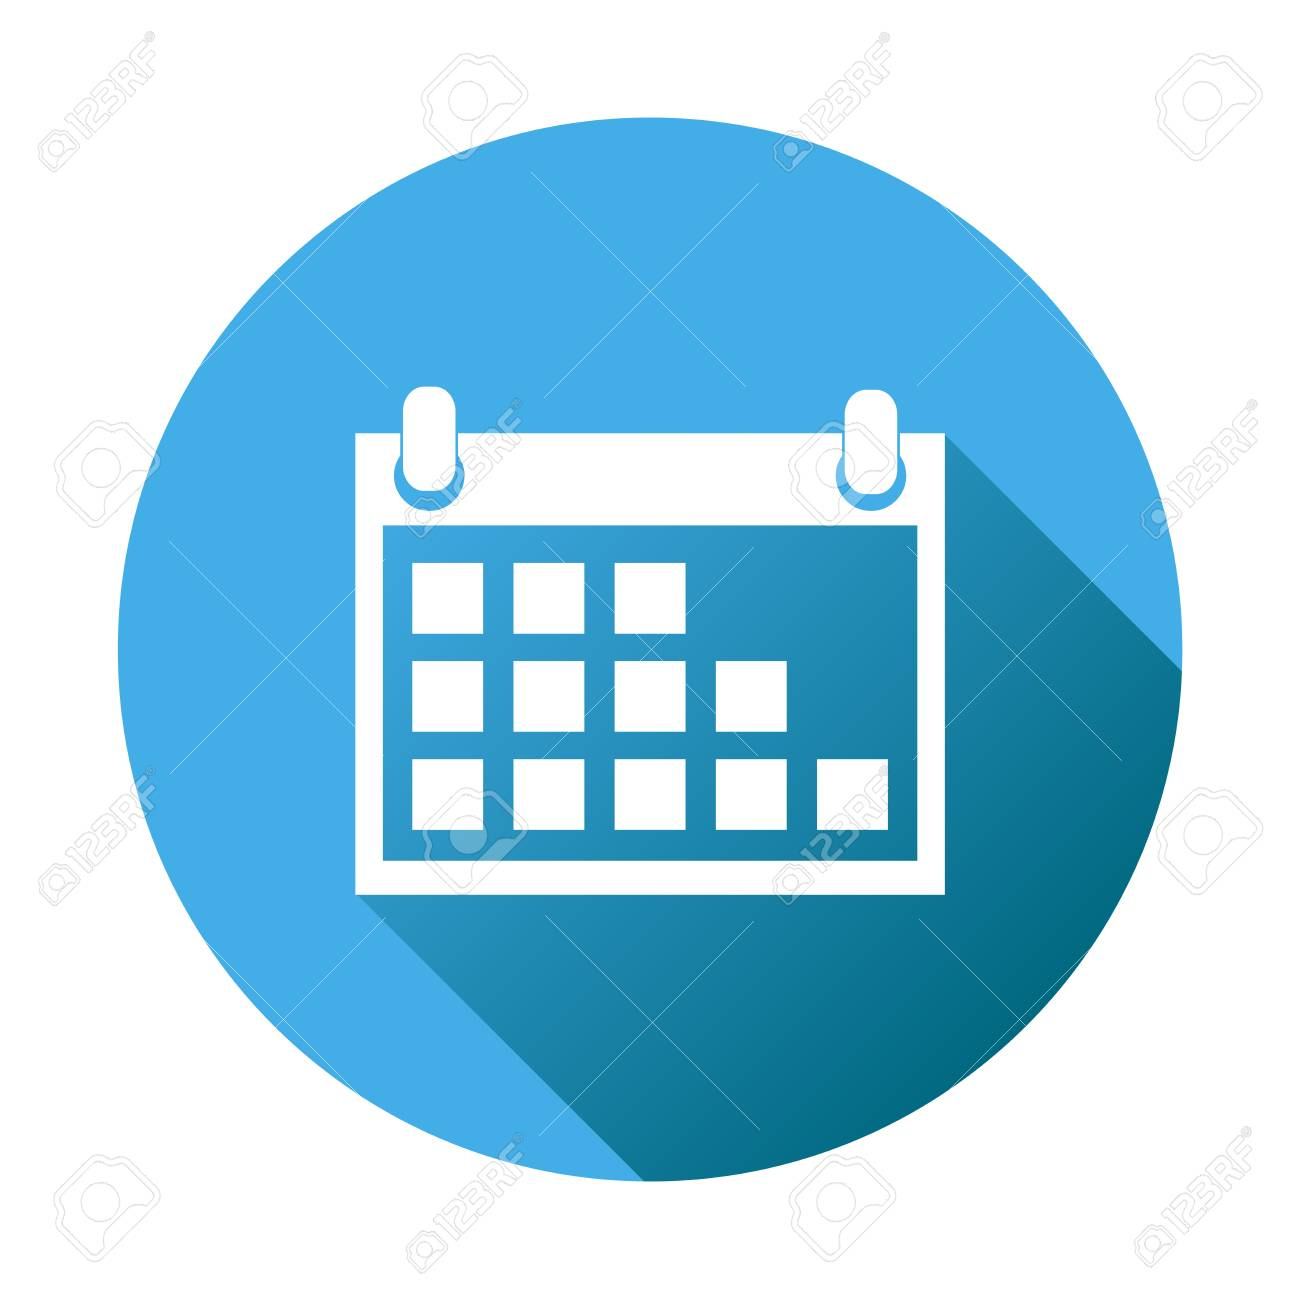 Calendar Icon On Blue Round Background, Vector Illustration intended for Calendar Icon Round